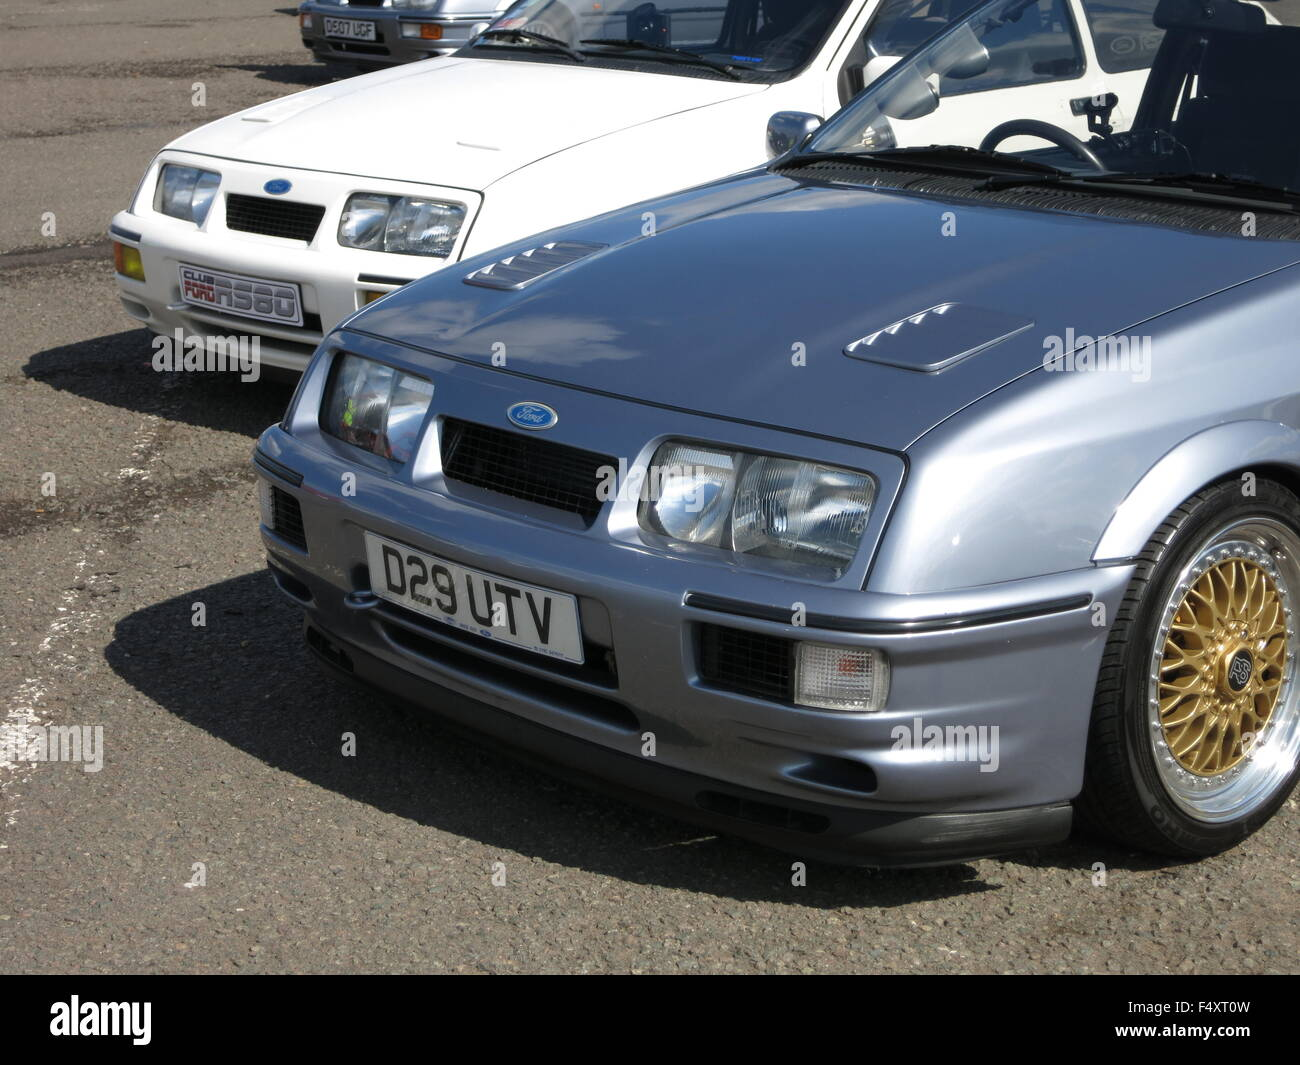 Ford Sierra RS Cosworth In moonstone blue as shown at RSOC rs owners club event at donnington park mk1 1st generation - Stock Image